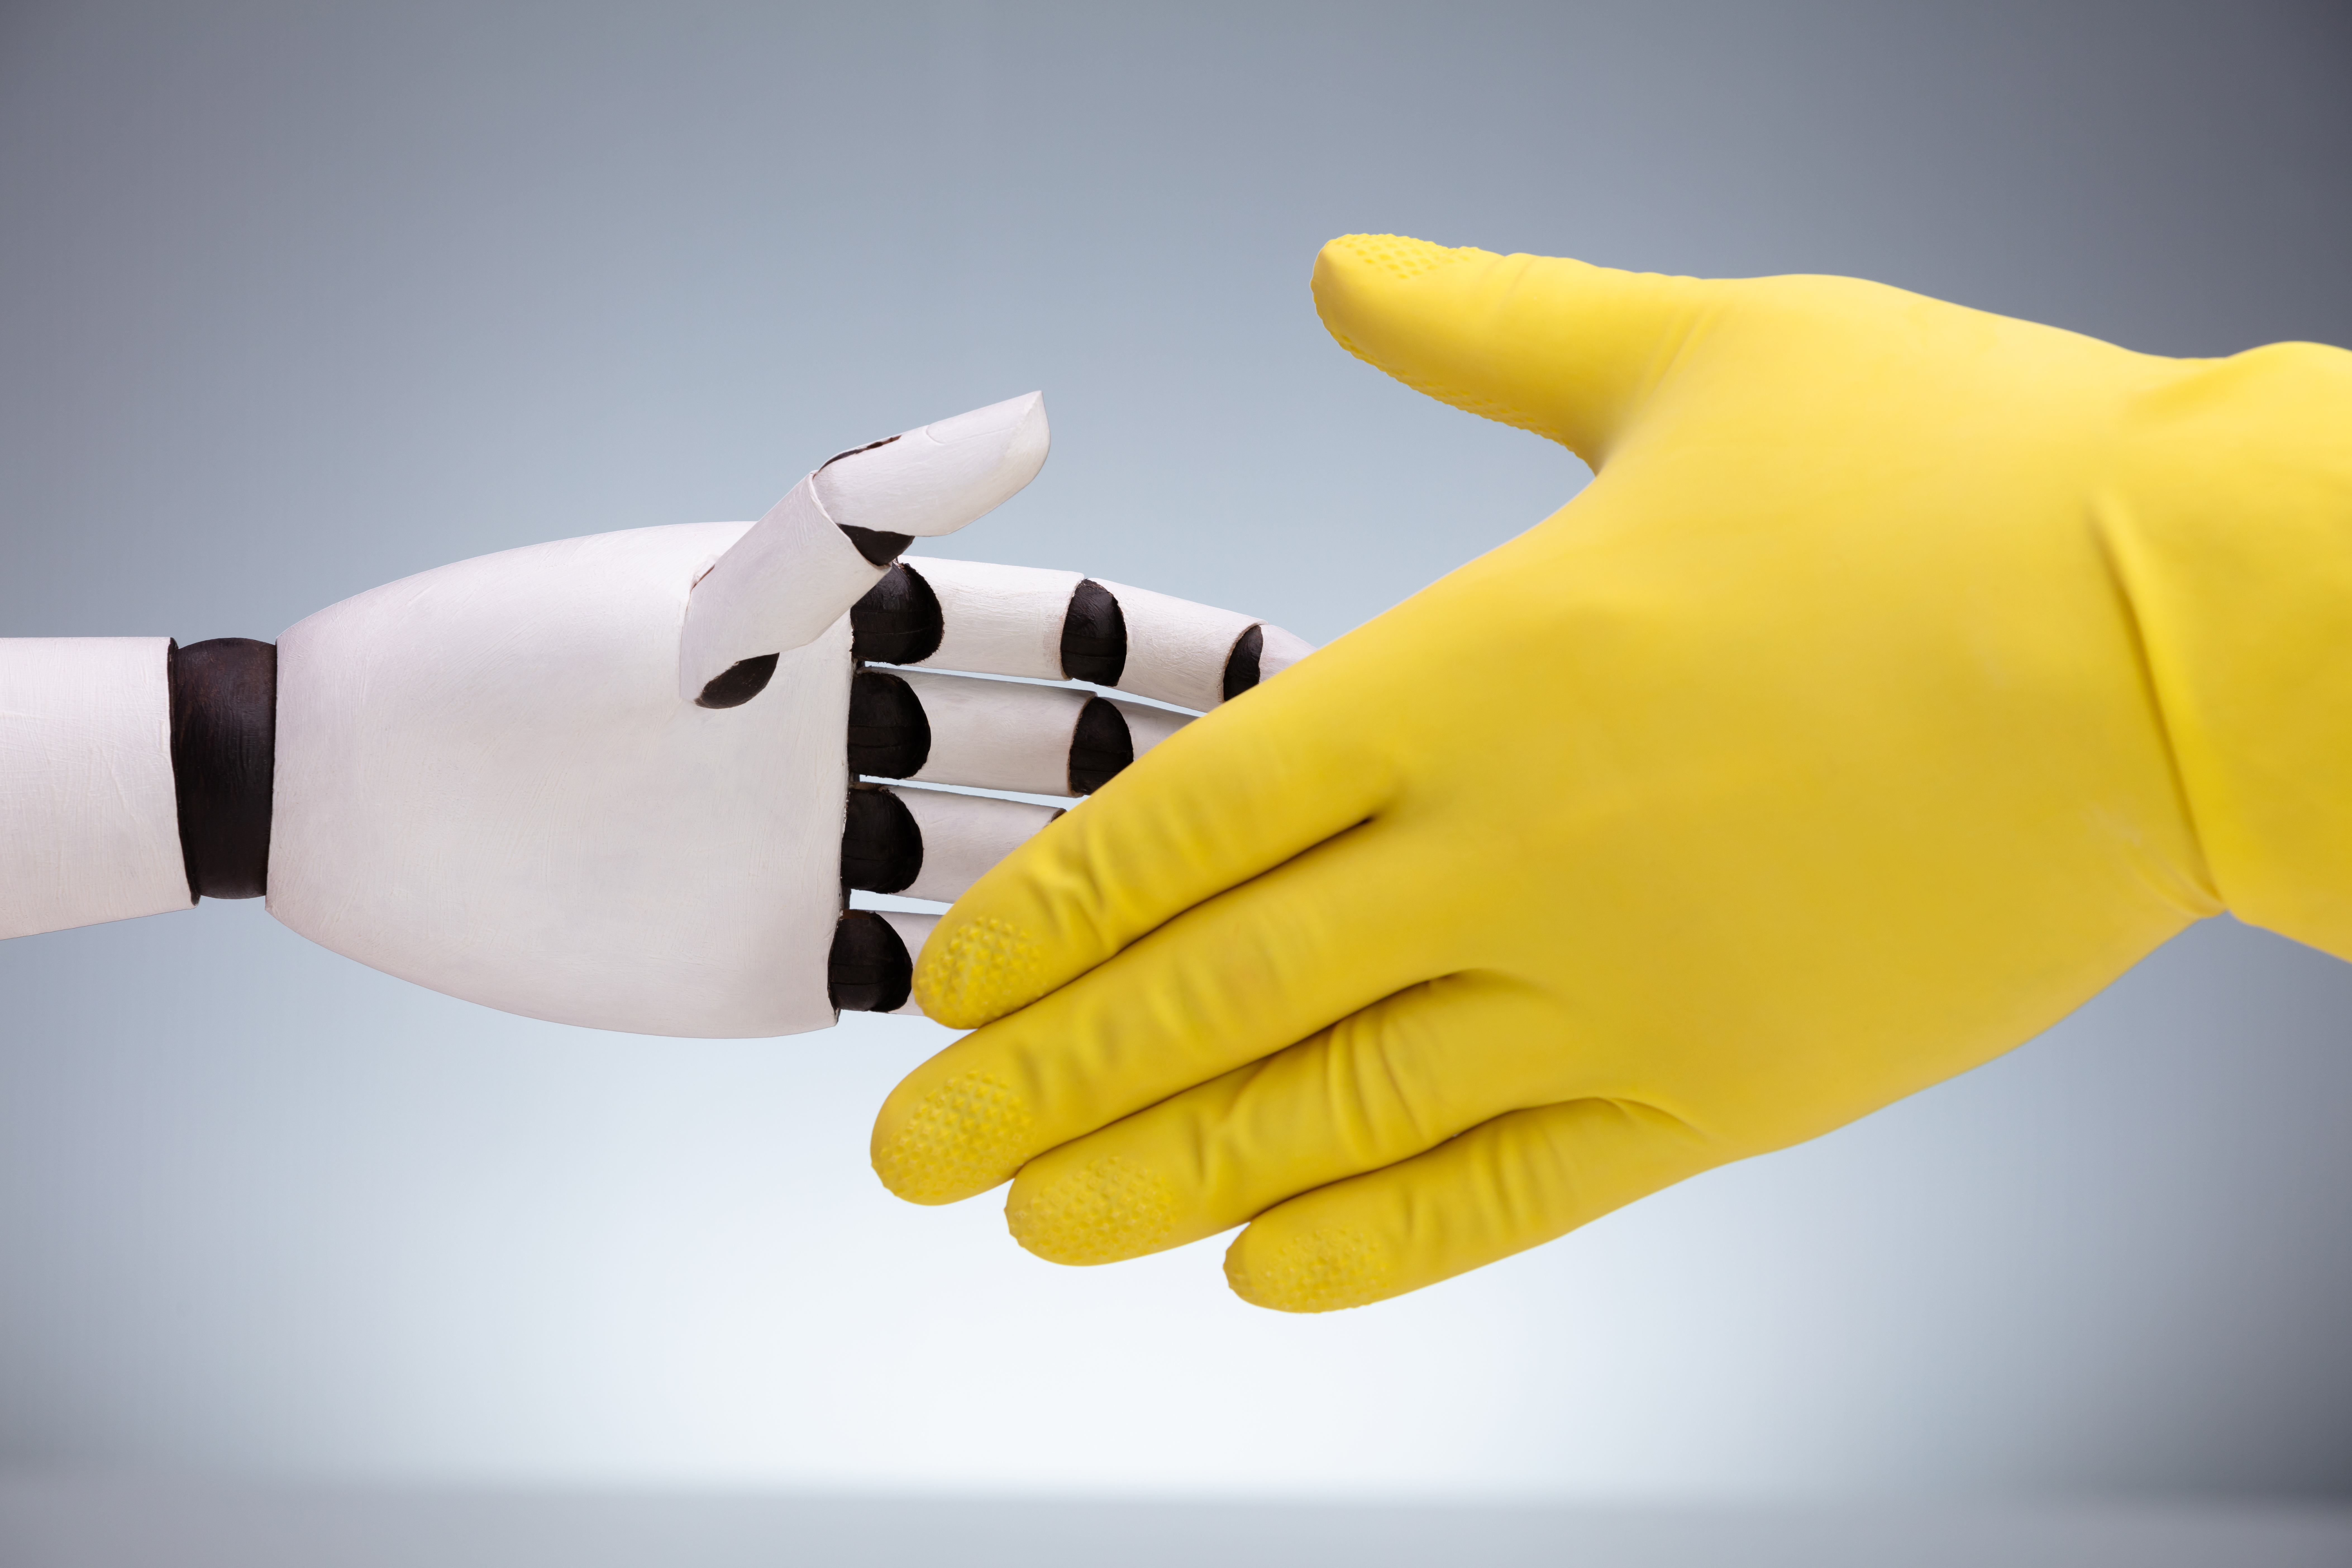 yellow rubber gloved hand shaking a robot hand